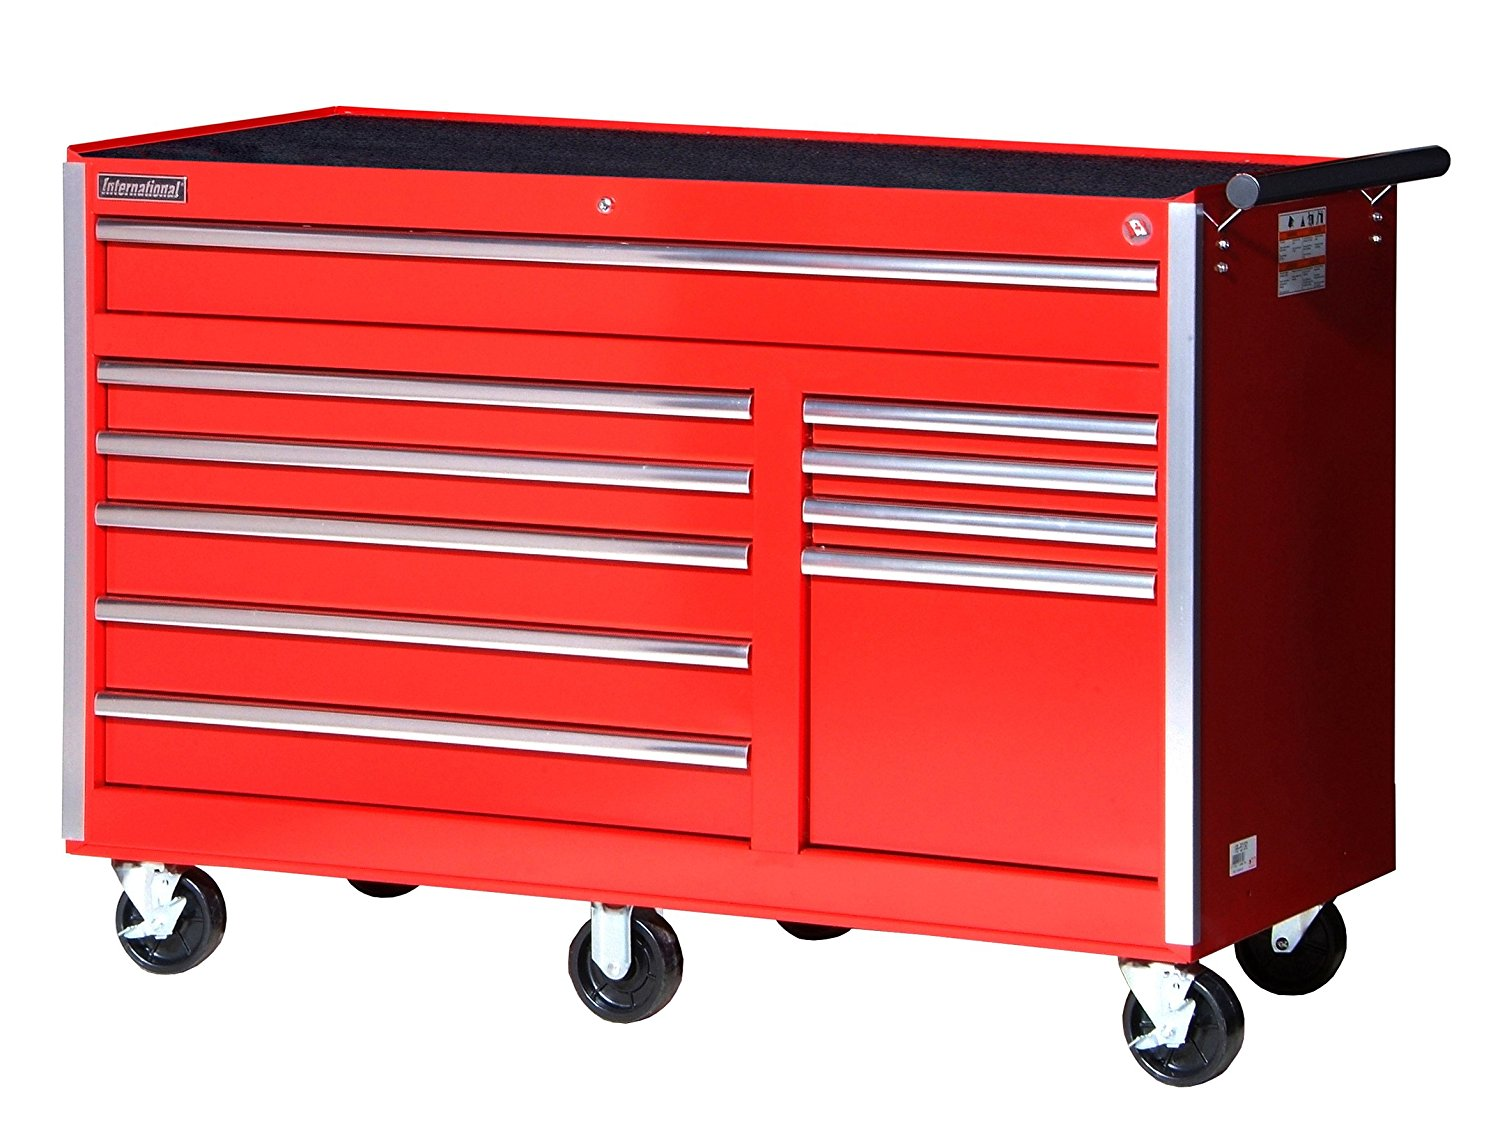 International VRB-5610RD 56-Inch 10 Drawer Red Tool Cabinet with Heavy Duty Ball Bearing Drawer Slides